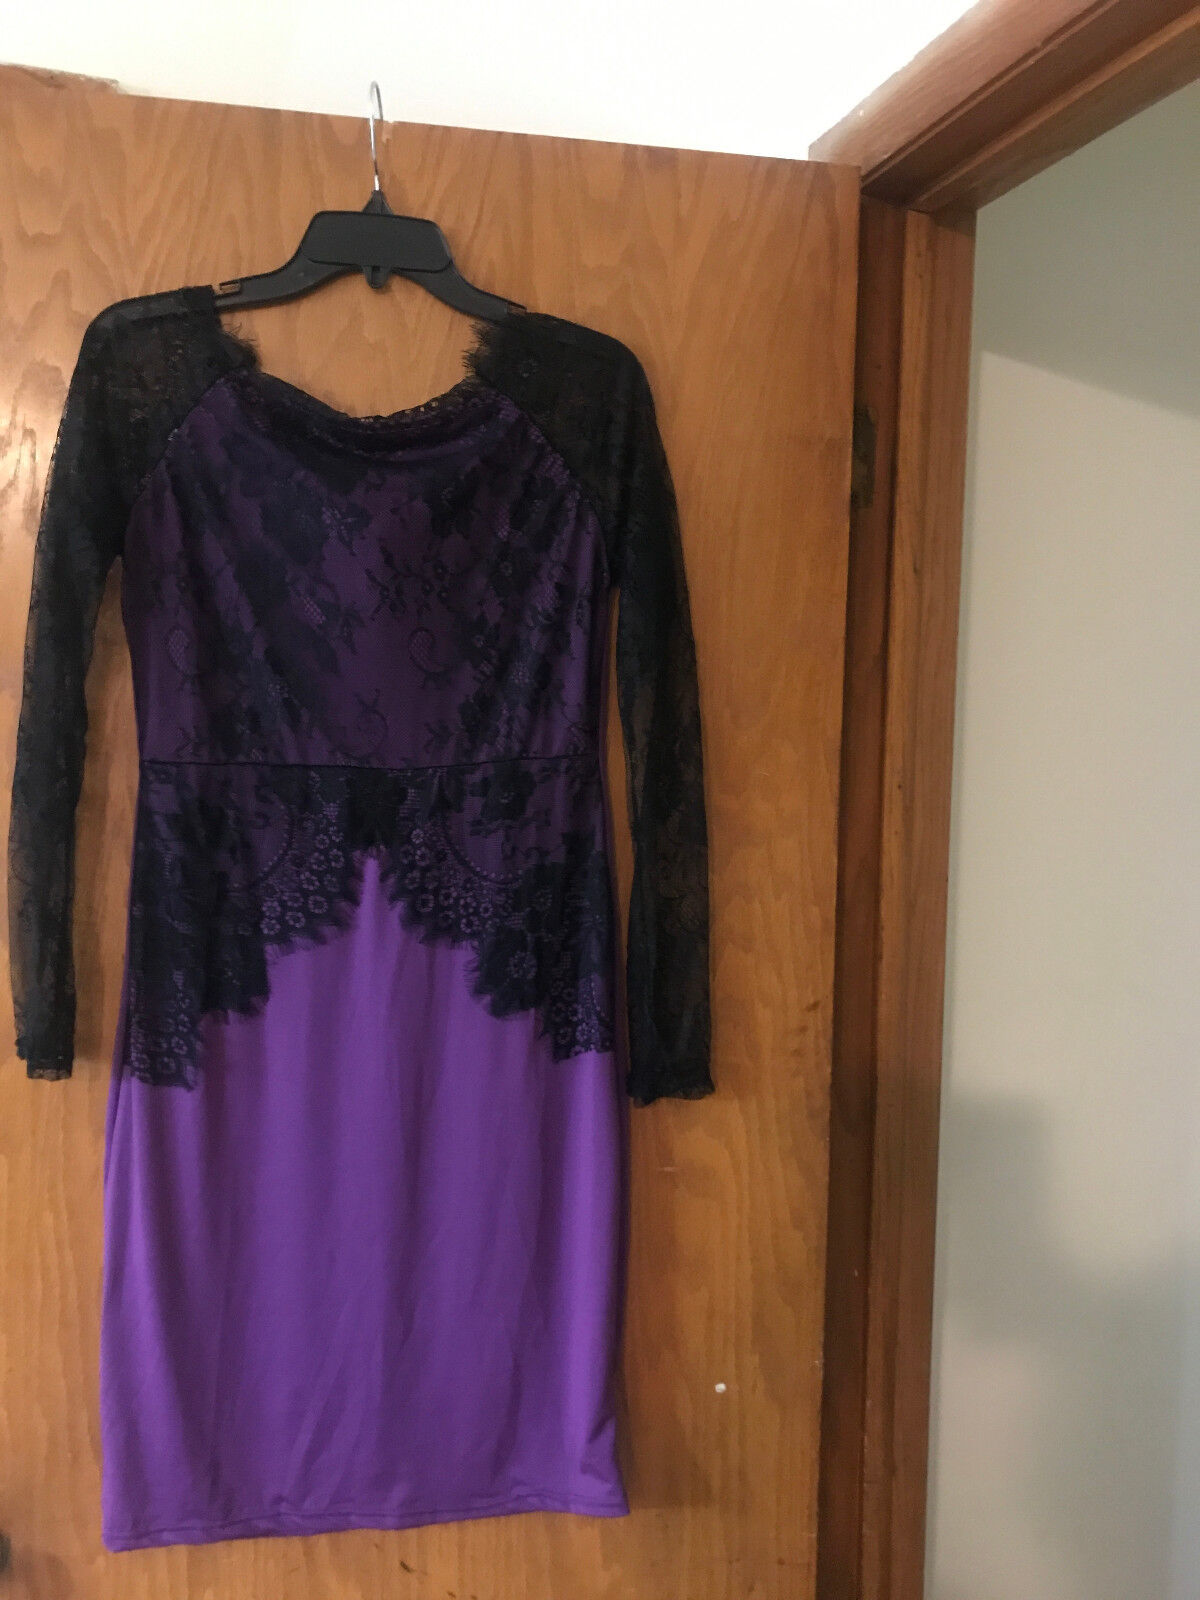 641f1324ced5 Details about Charlotte Russe, Long Sleeve Lace Dress,Round Neck,(C) Black  & Purple,100% Poly.